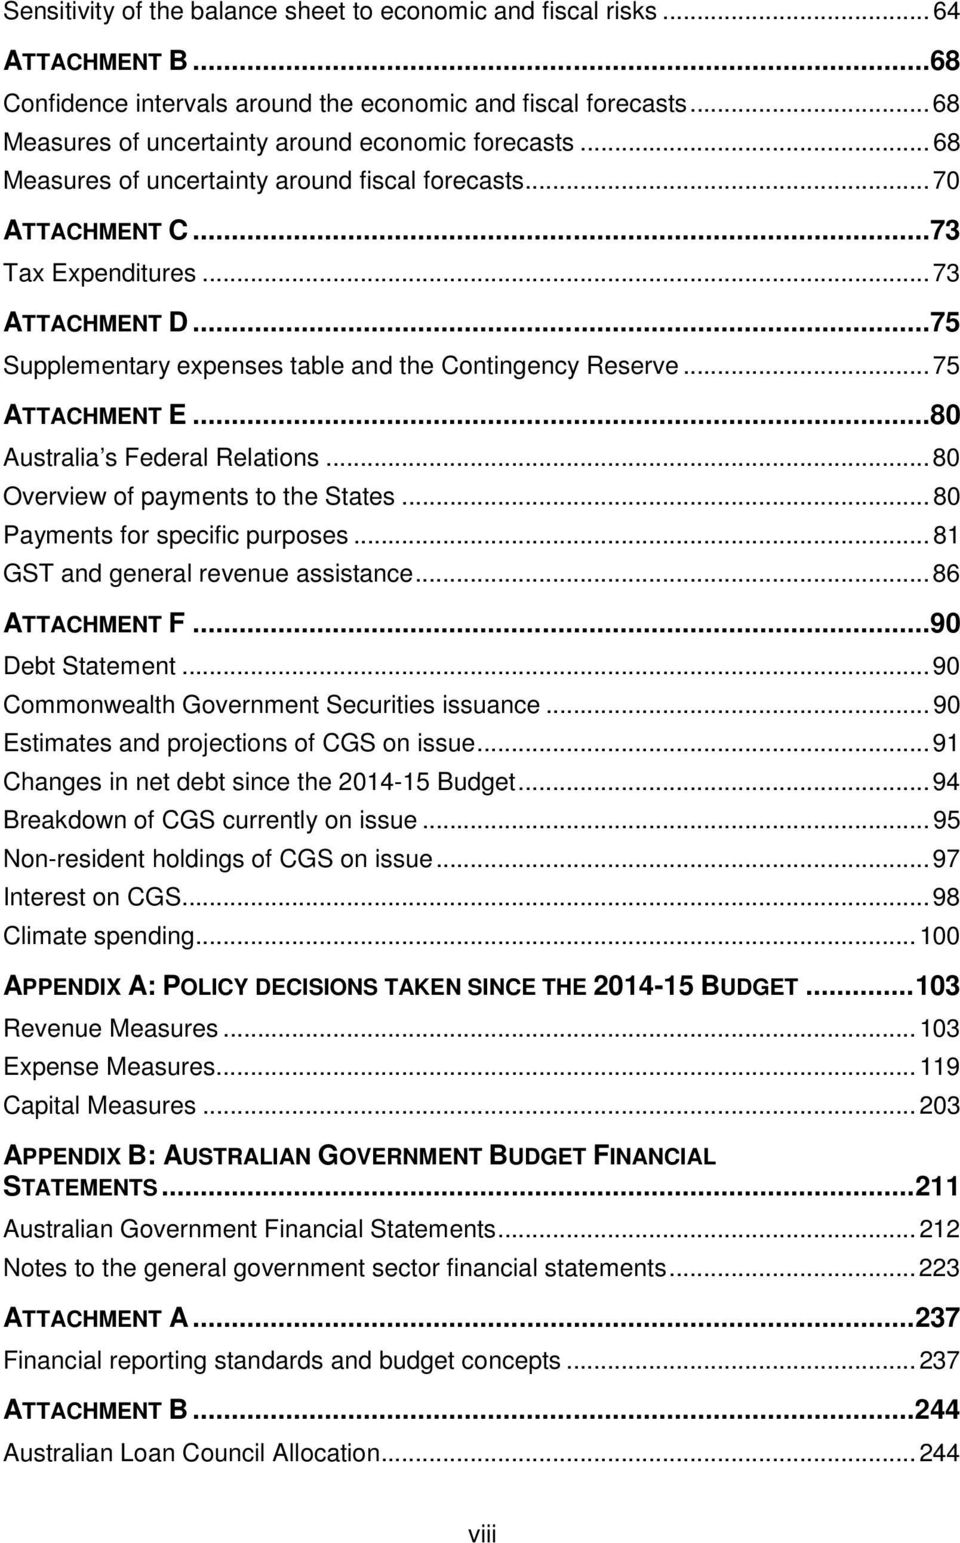 .. 75 Supplementary expenses table and the Contingency Reserve... 75 ATTACHMENT E... 80 Australia s Federal Relations... 80 Overview of payments to the States... 80 Payments for specific purposes.